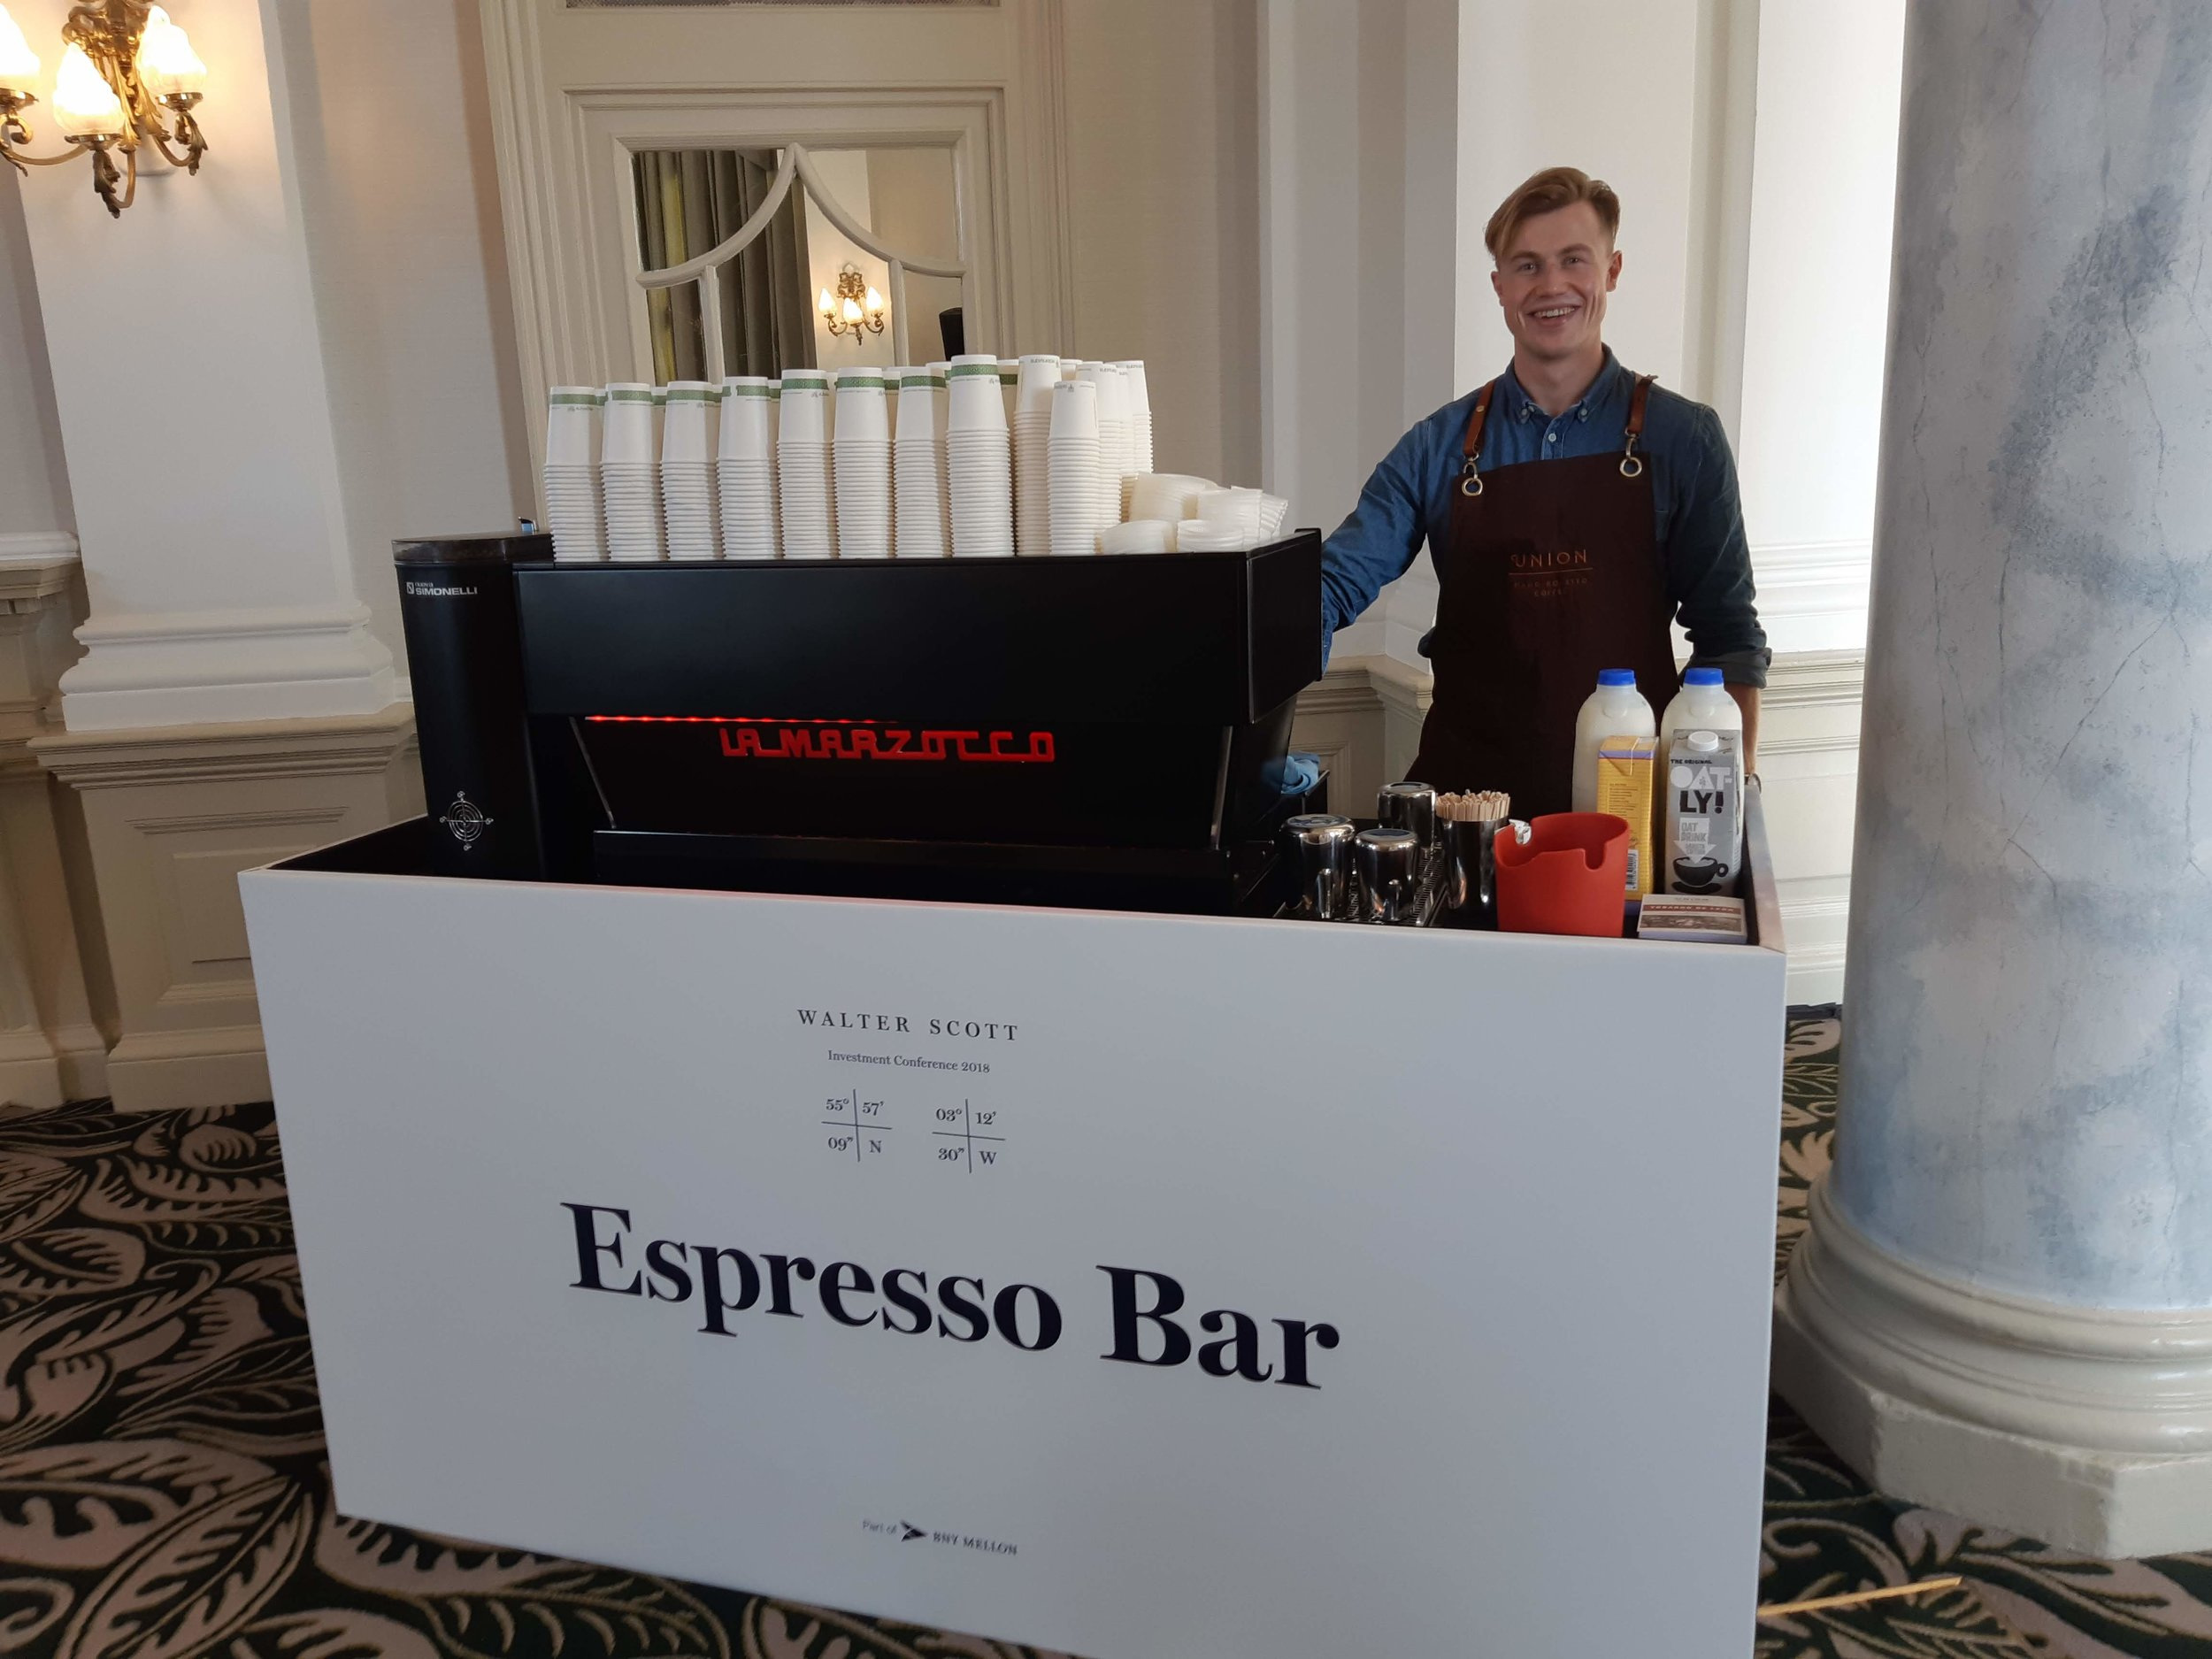 Coffee for Corporate Events   Superior coffee for conferences, meetings and hospitality suites.   Find out more